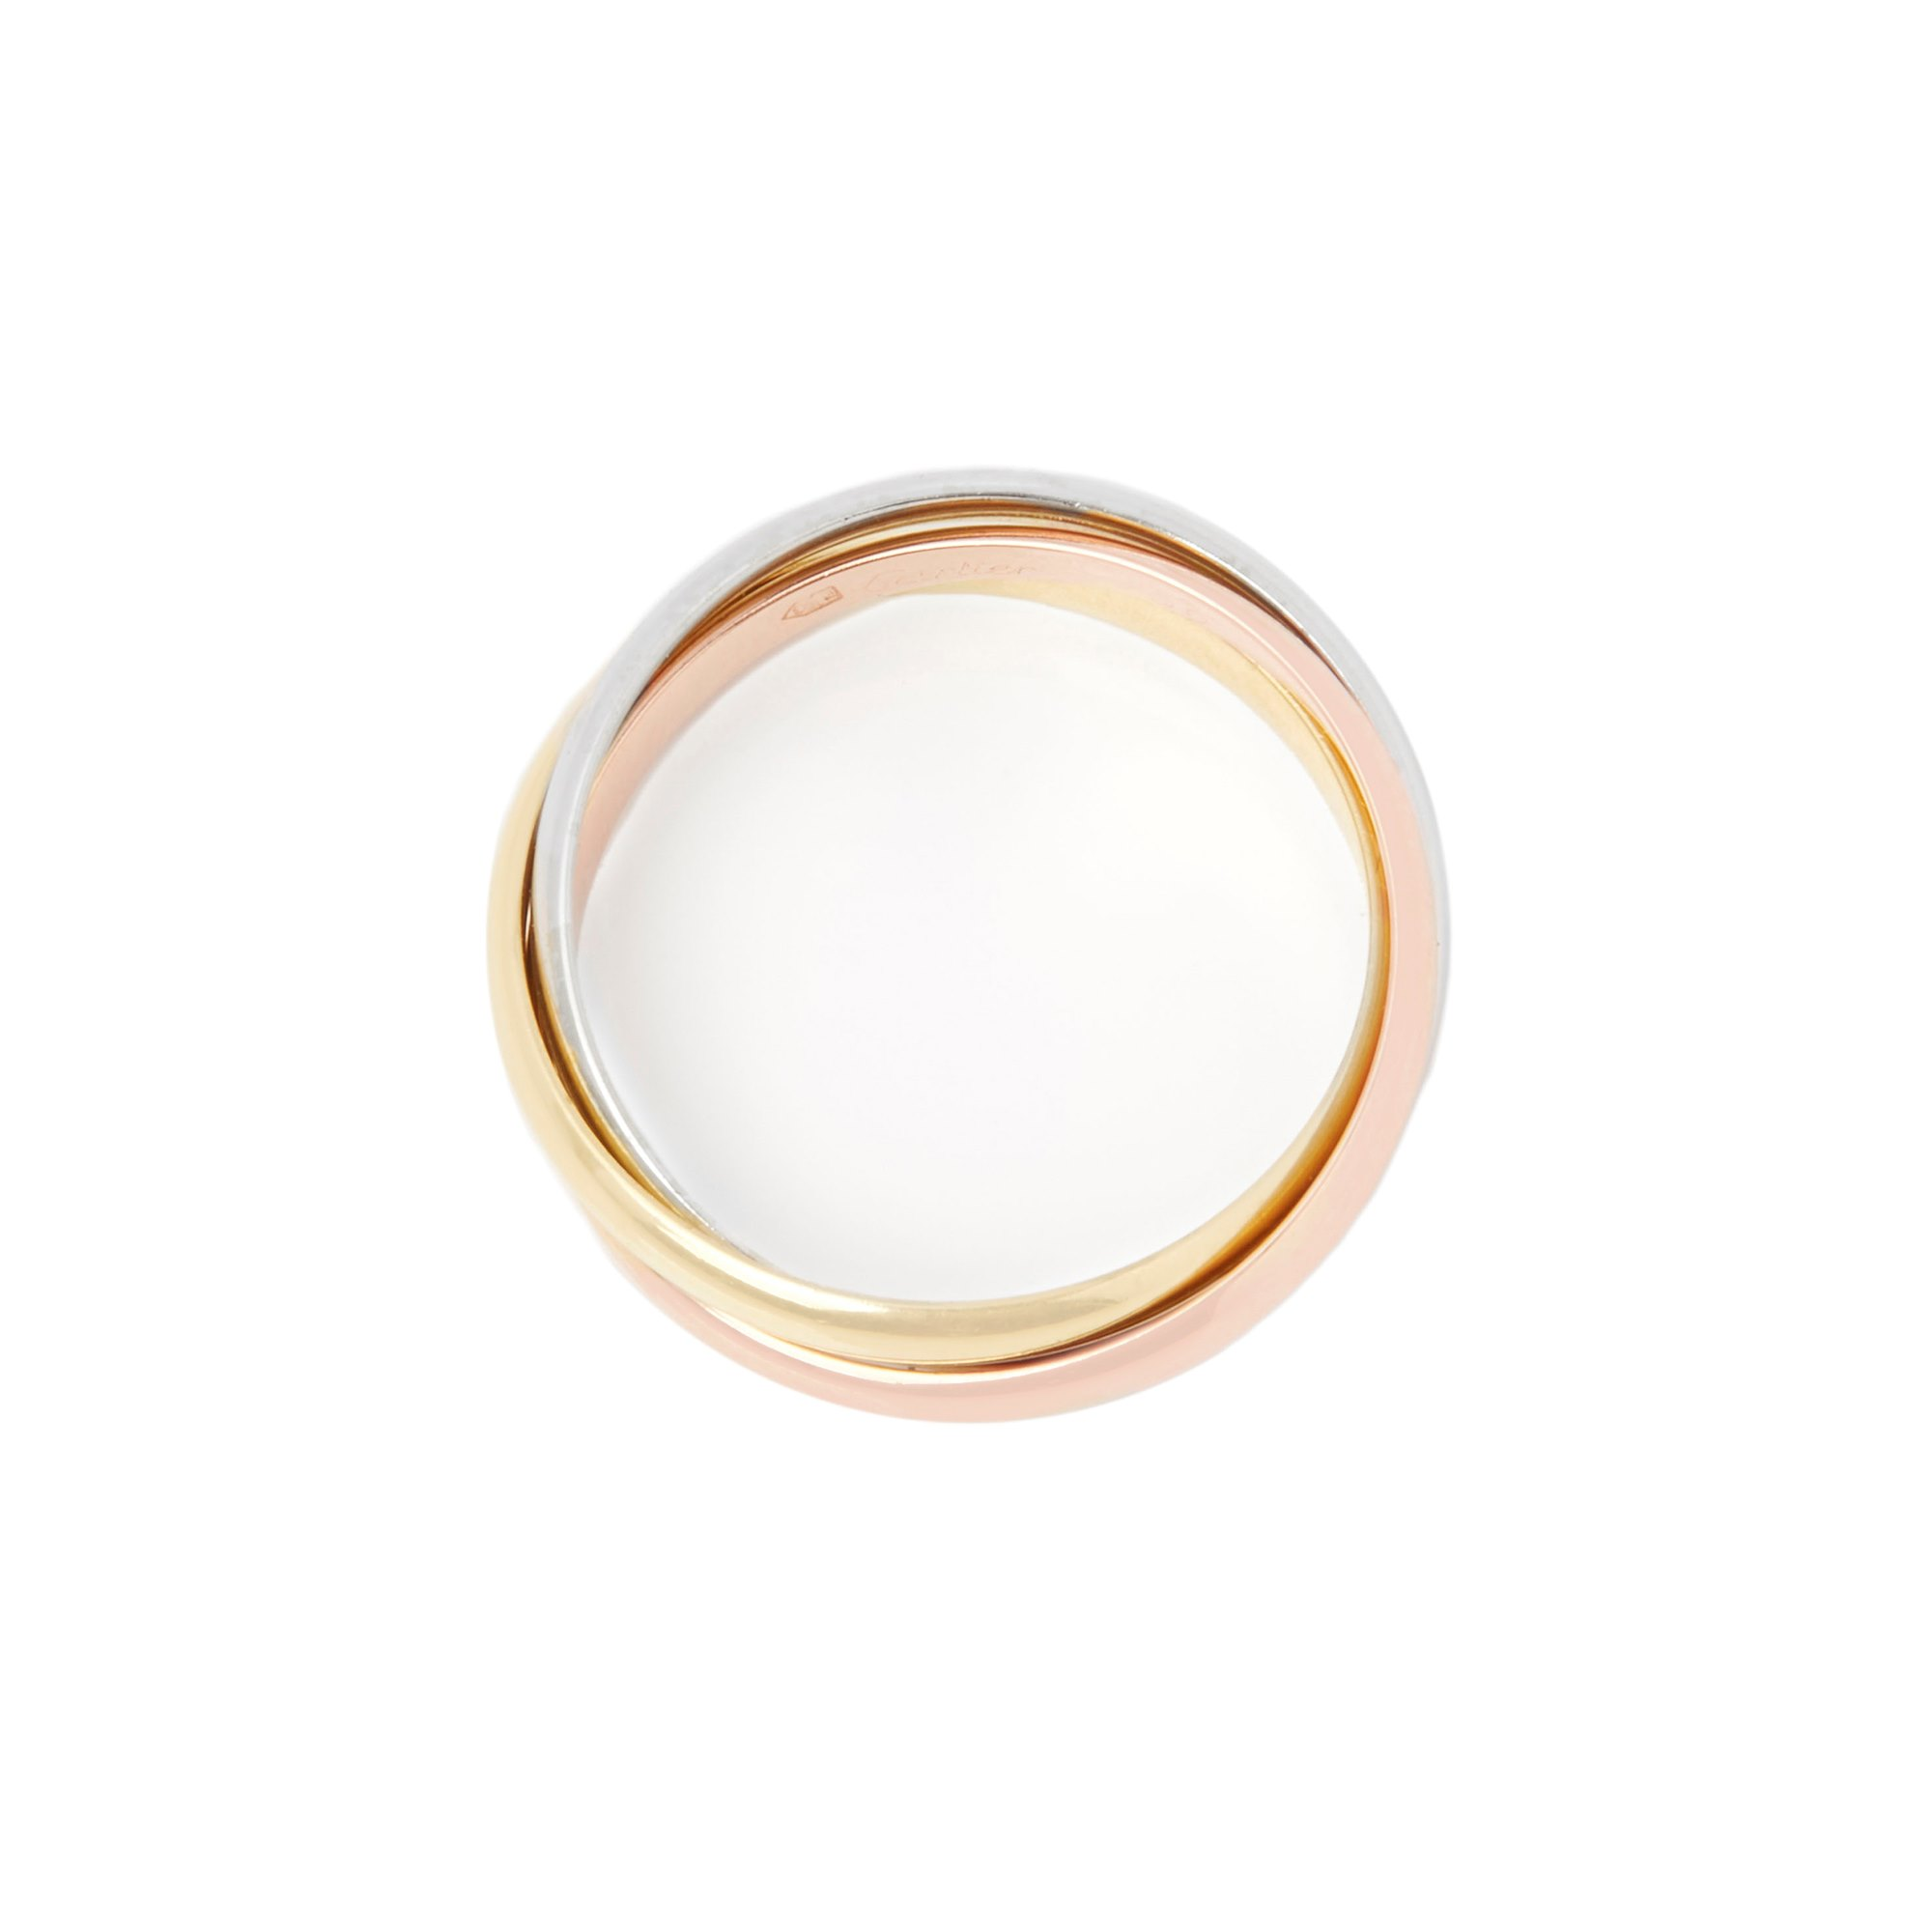 Cartier 18k Yellow, White & Rose Gold Small Trinity Ring